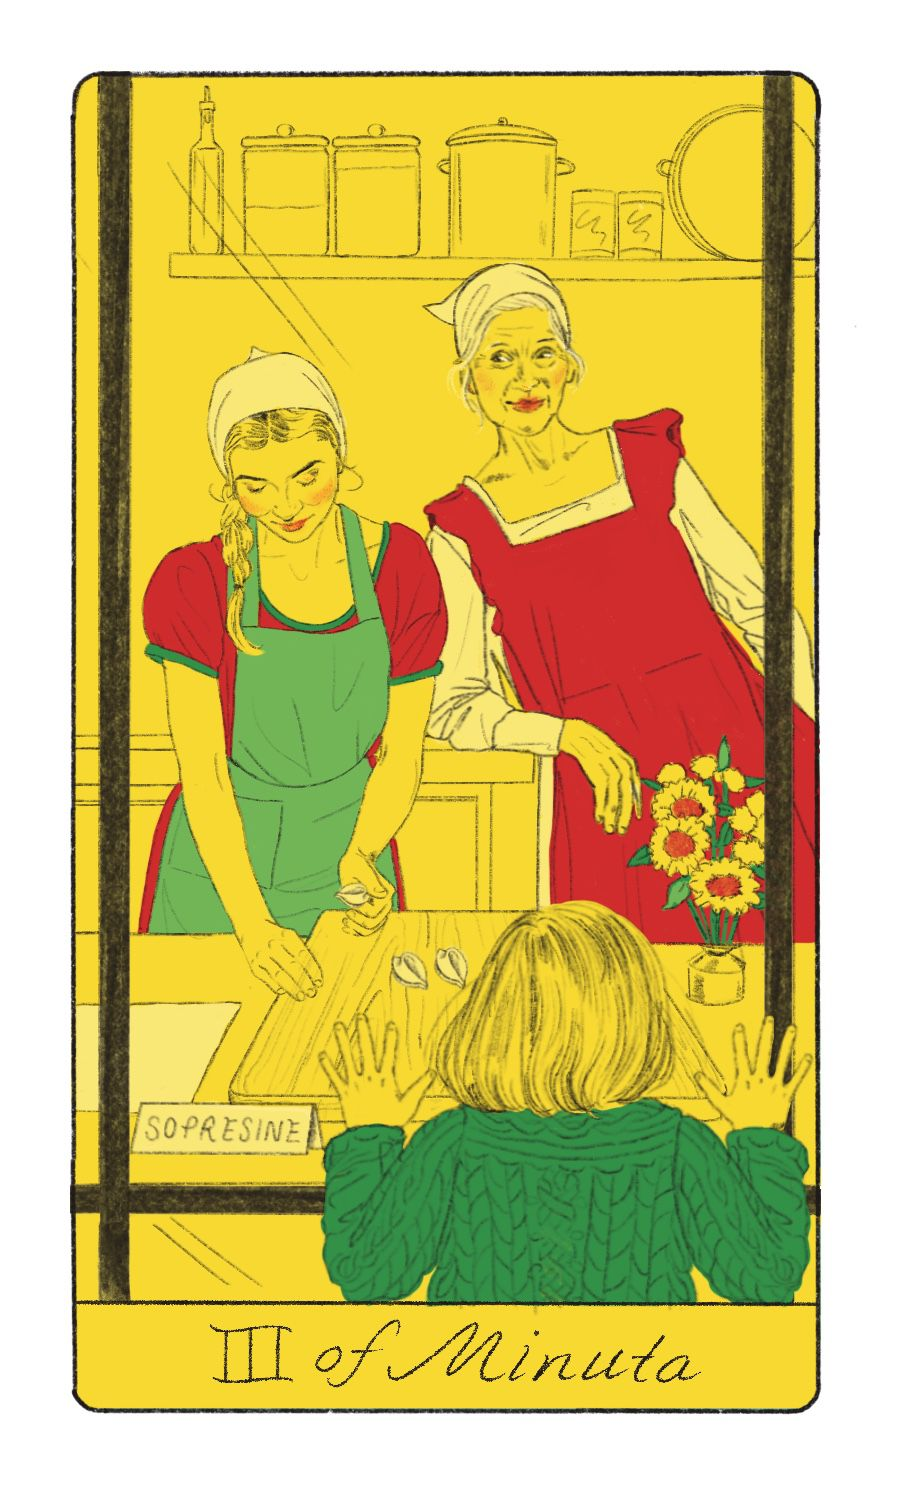 Tarot card of Three of Minuta, depicting a woman rolling pasta in front of a window, a child pressing his nose to the glass looking in, and an older woman looking on inside